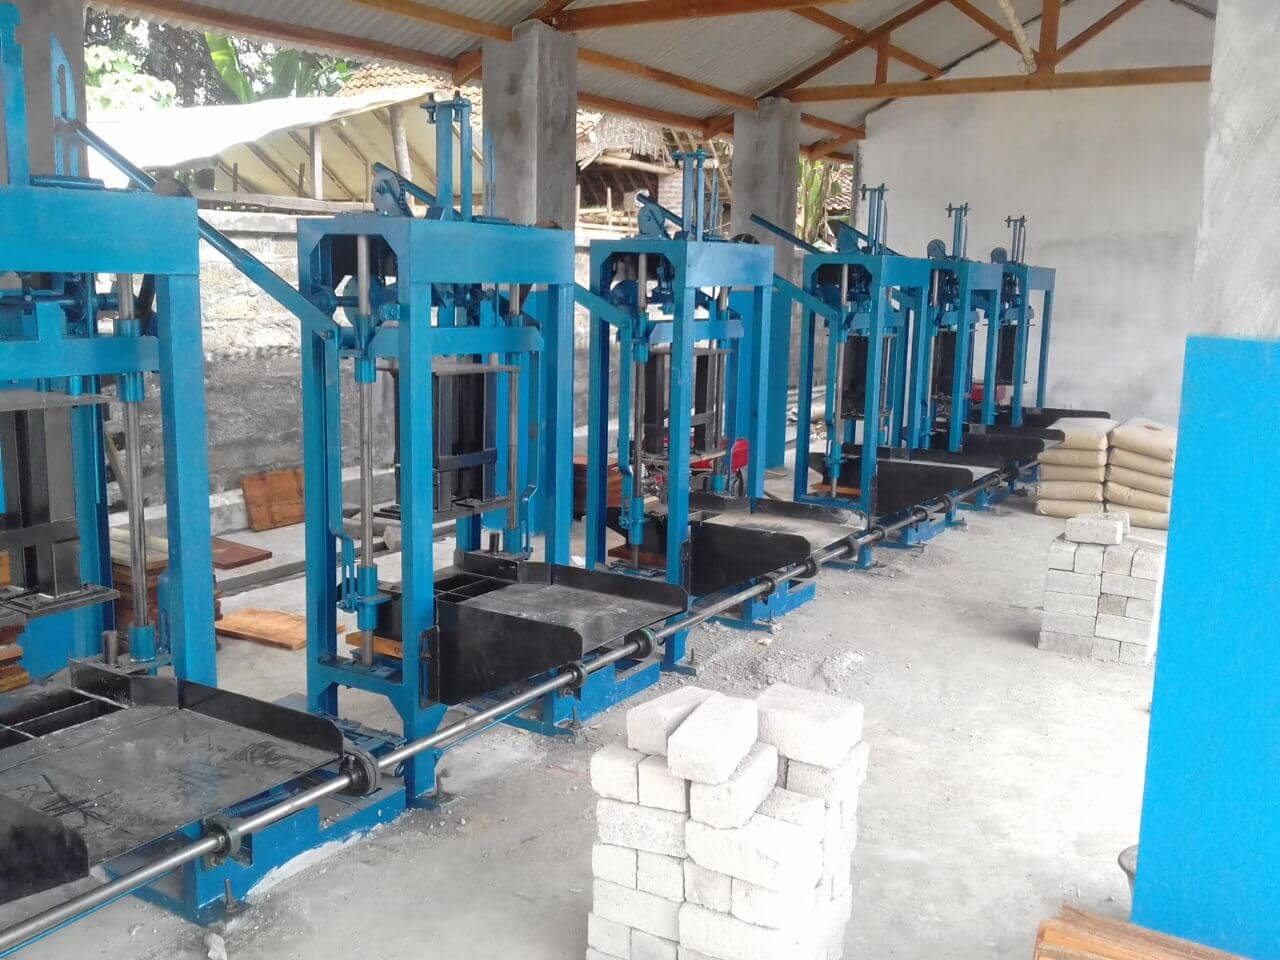 Jual mesin paving blok manual di Batam